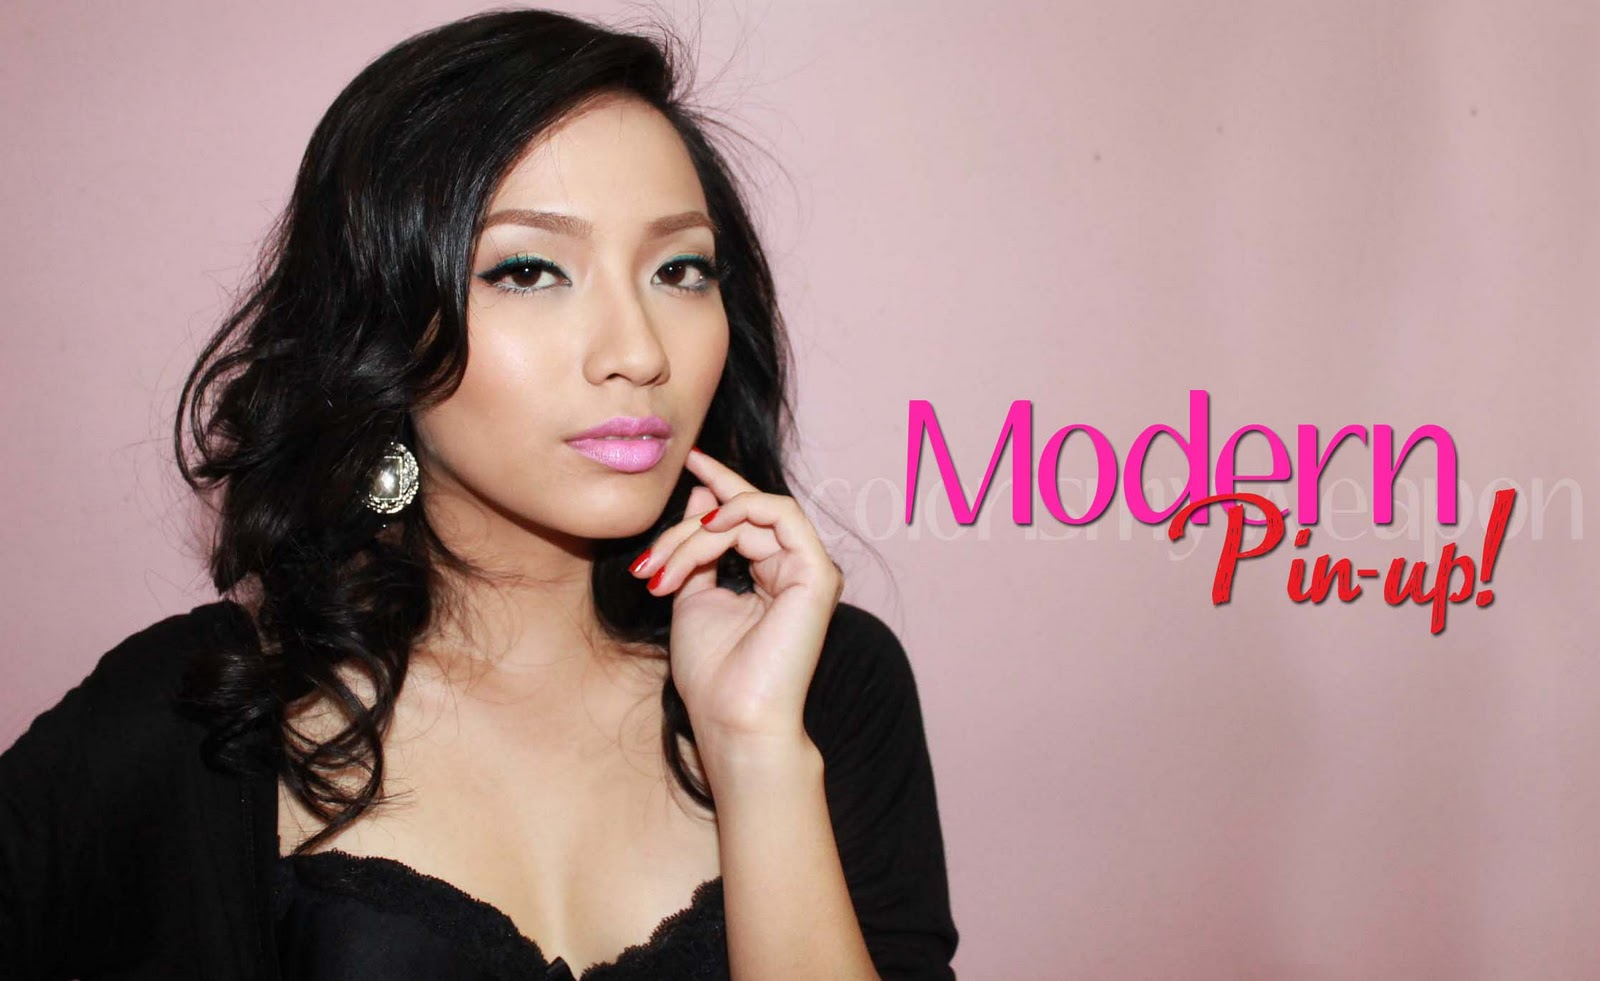 colorismyweapon by noe mae beauty videos hair care reviews girly chitchat modern pin up look. Black Bedroom Furniture Sets. Home Design Ideas